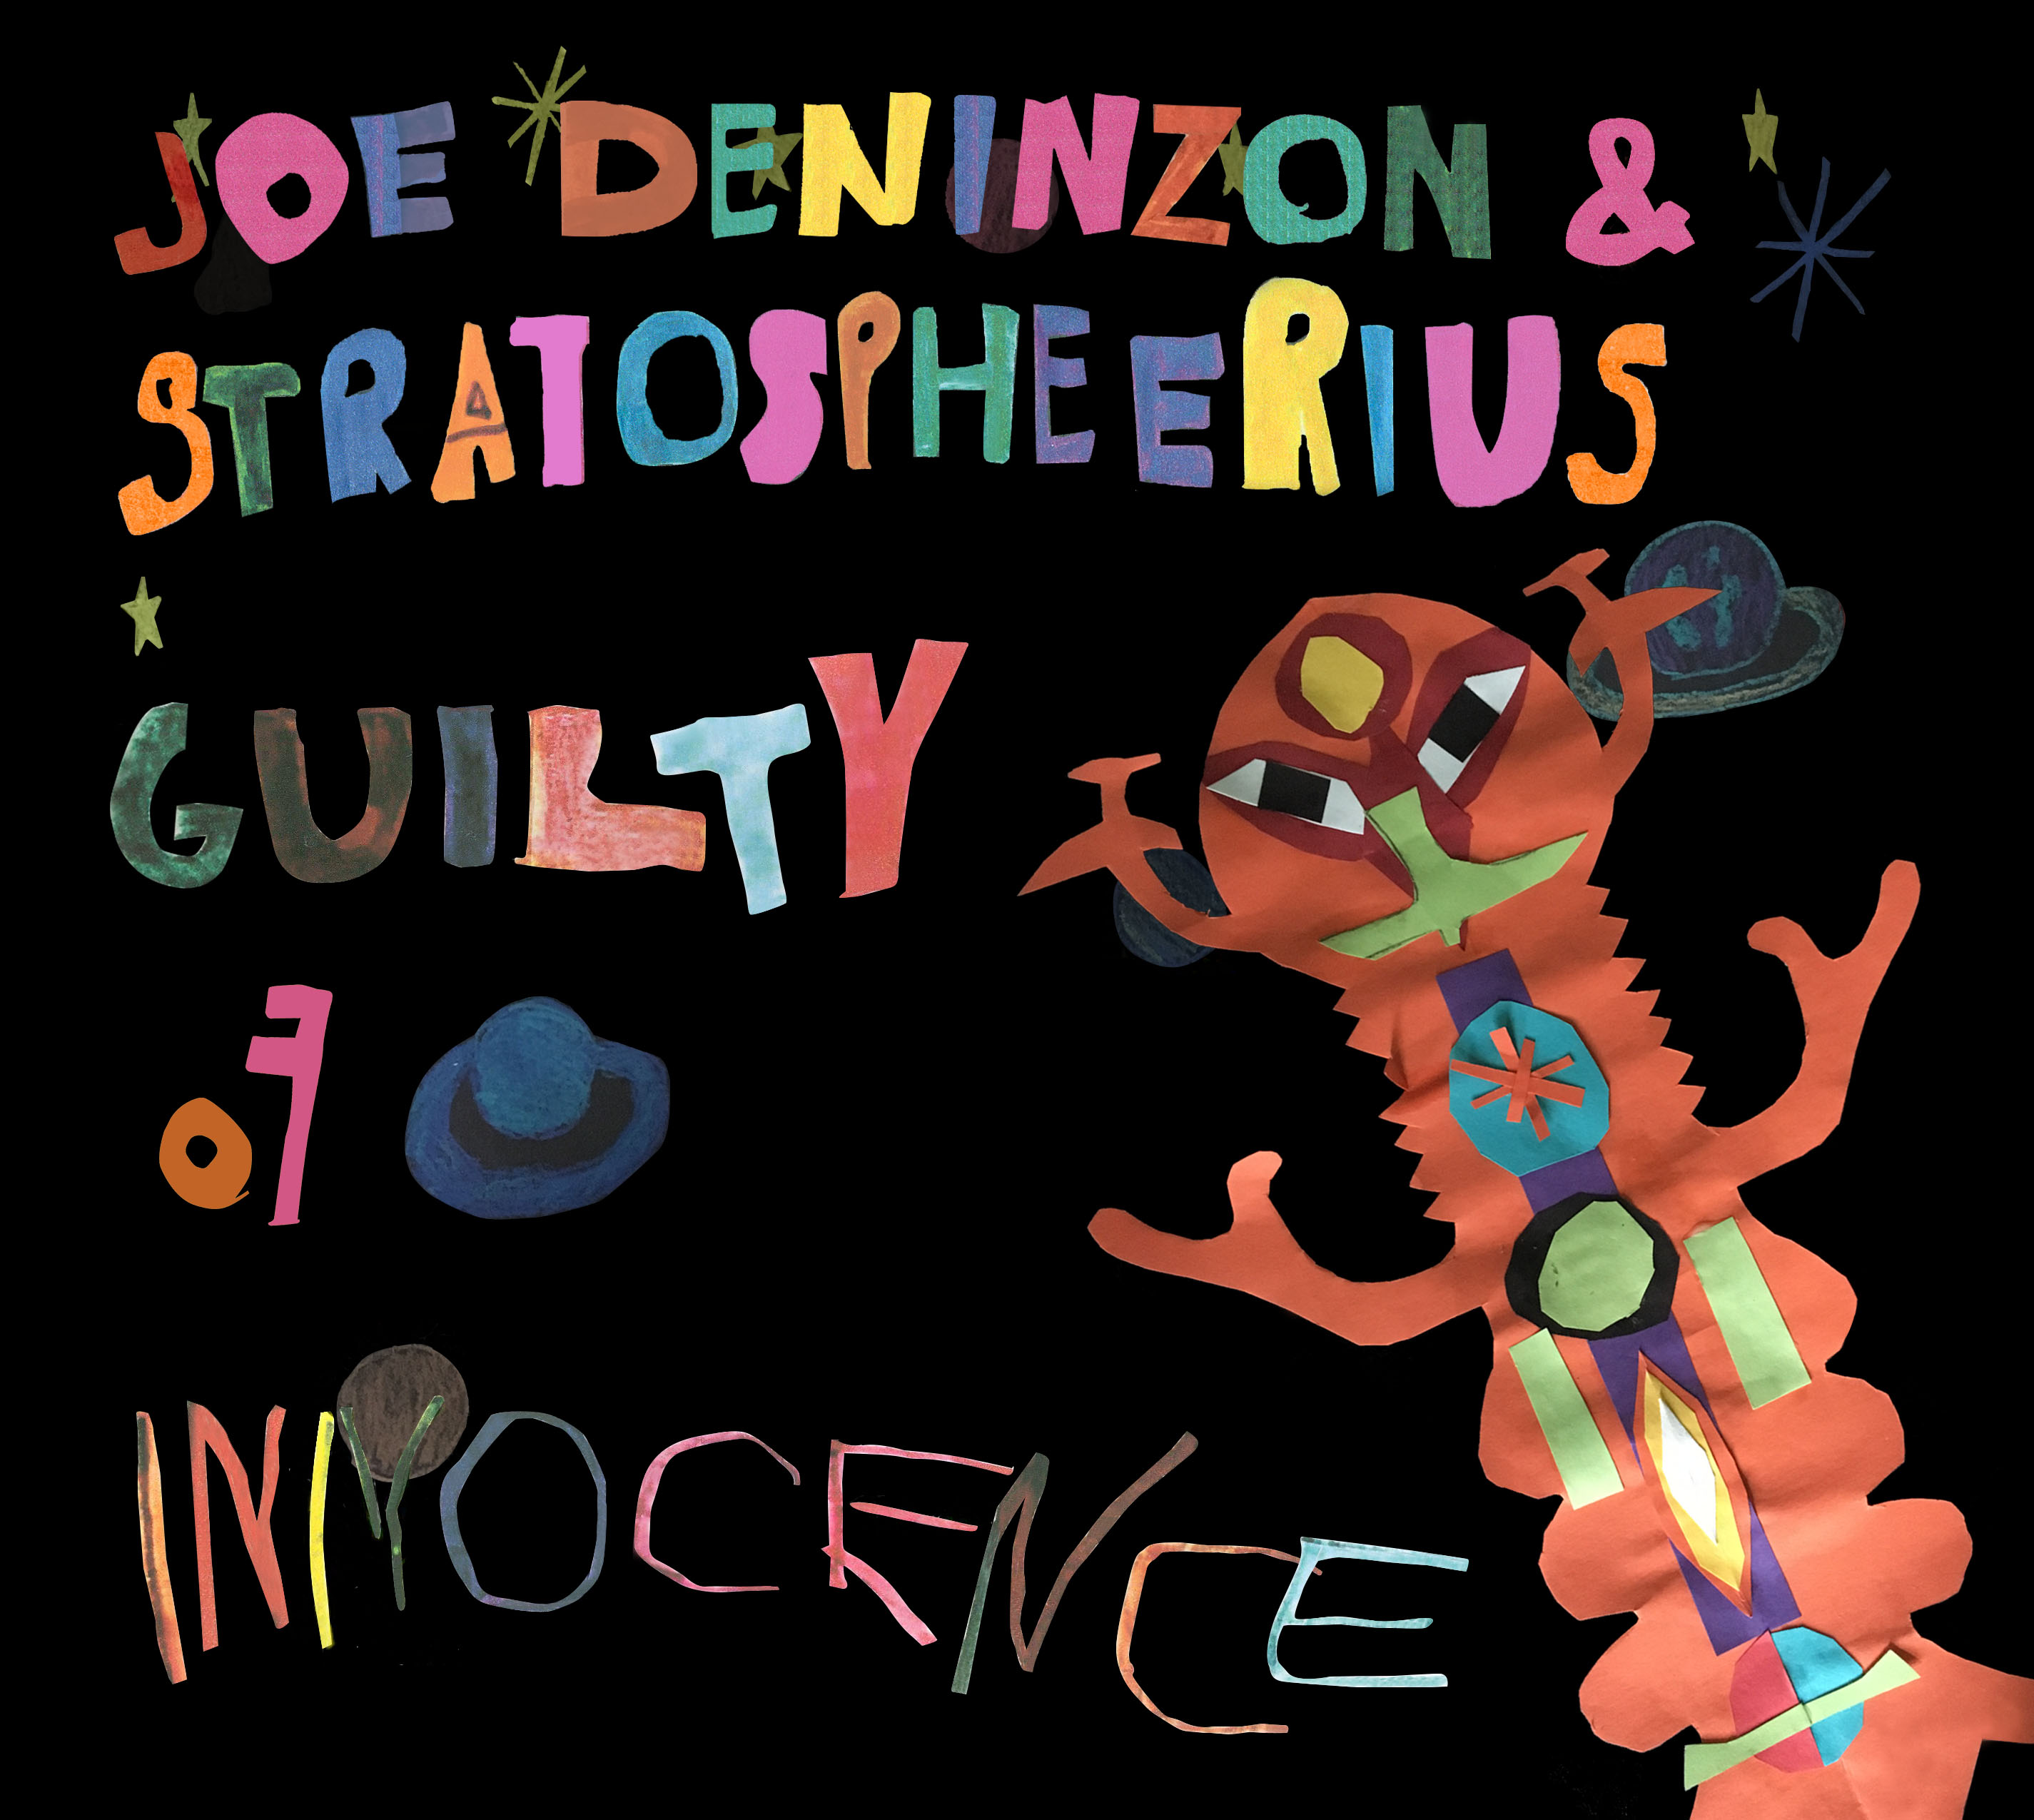 Joe Deninzon writes about the songs on his new album, 'Guilty Of Innocence'